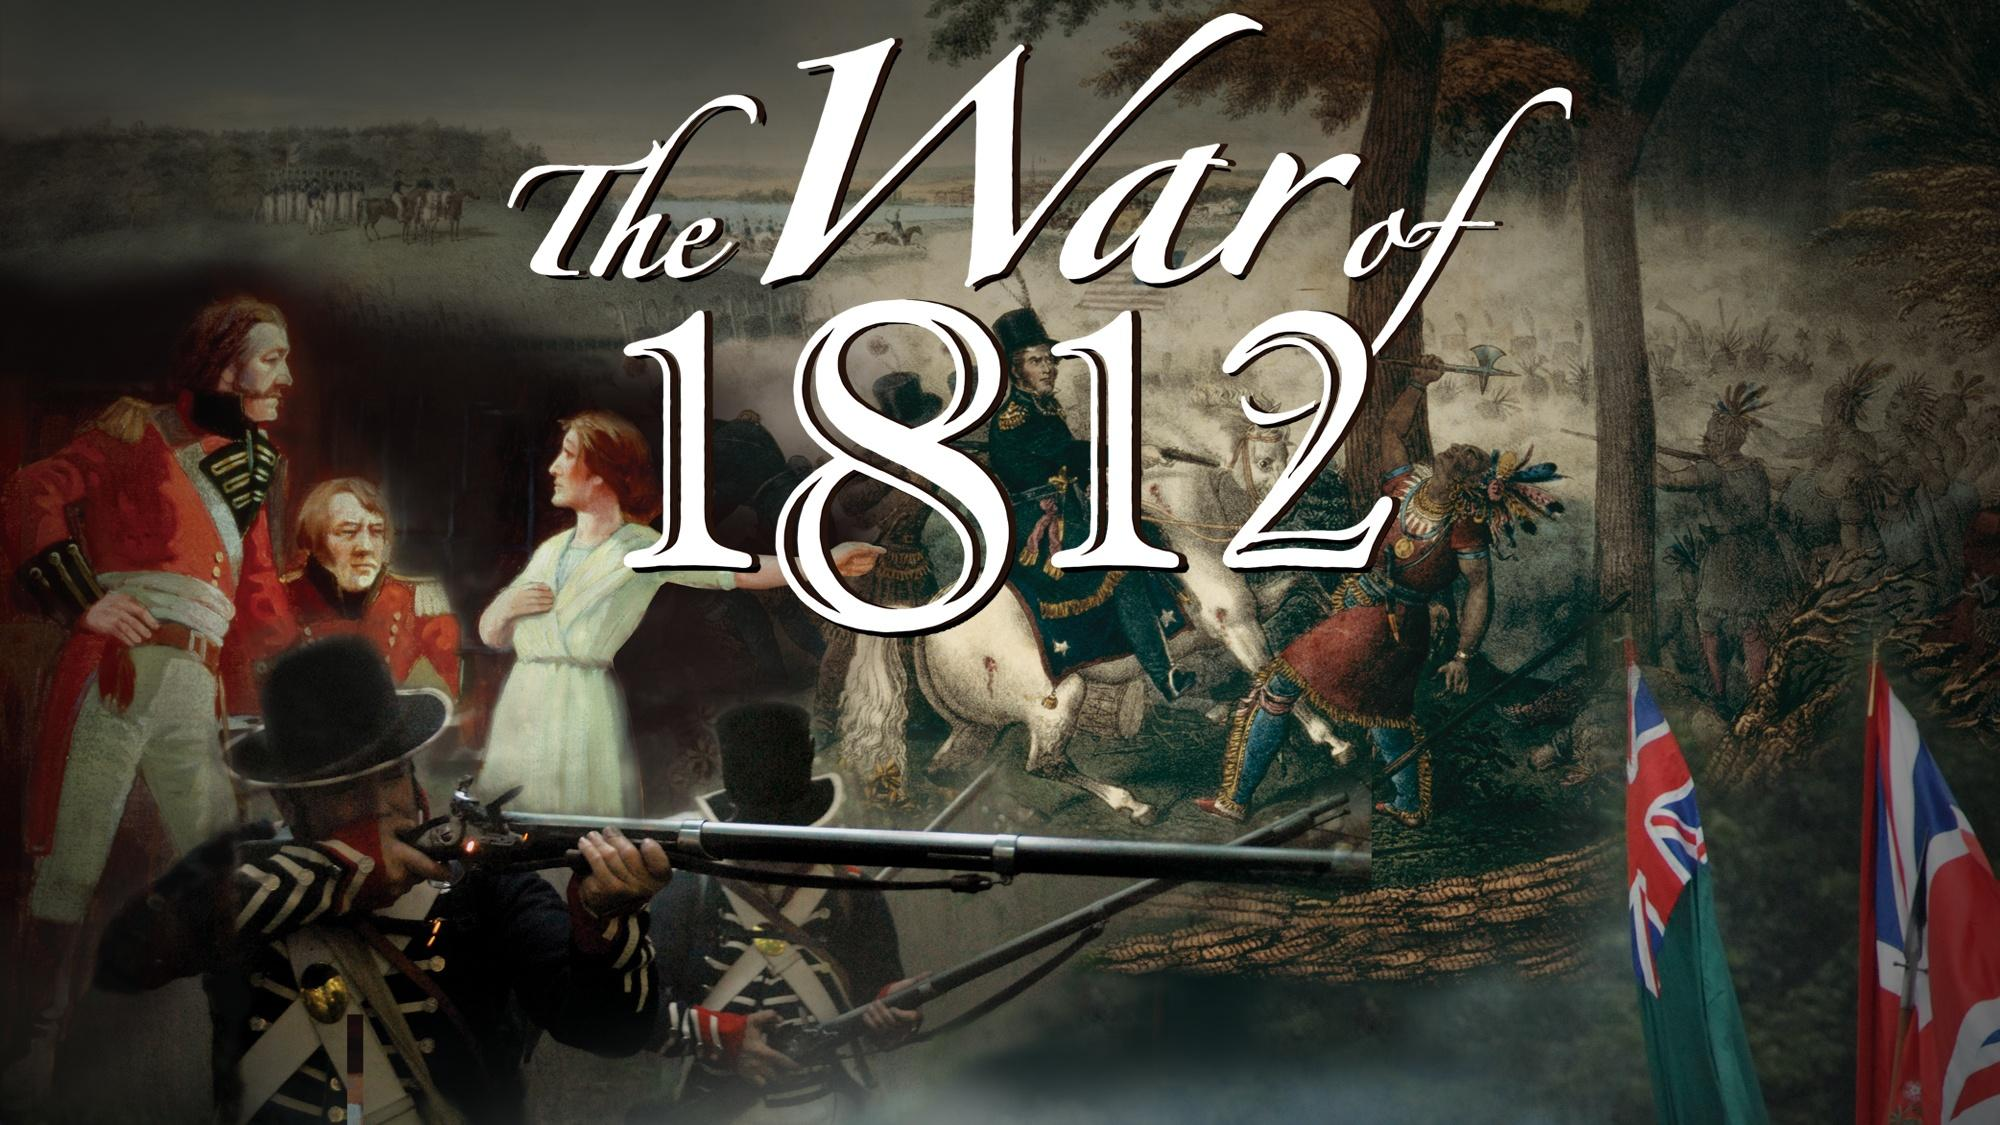 The War Of